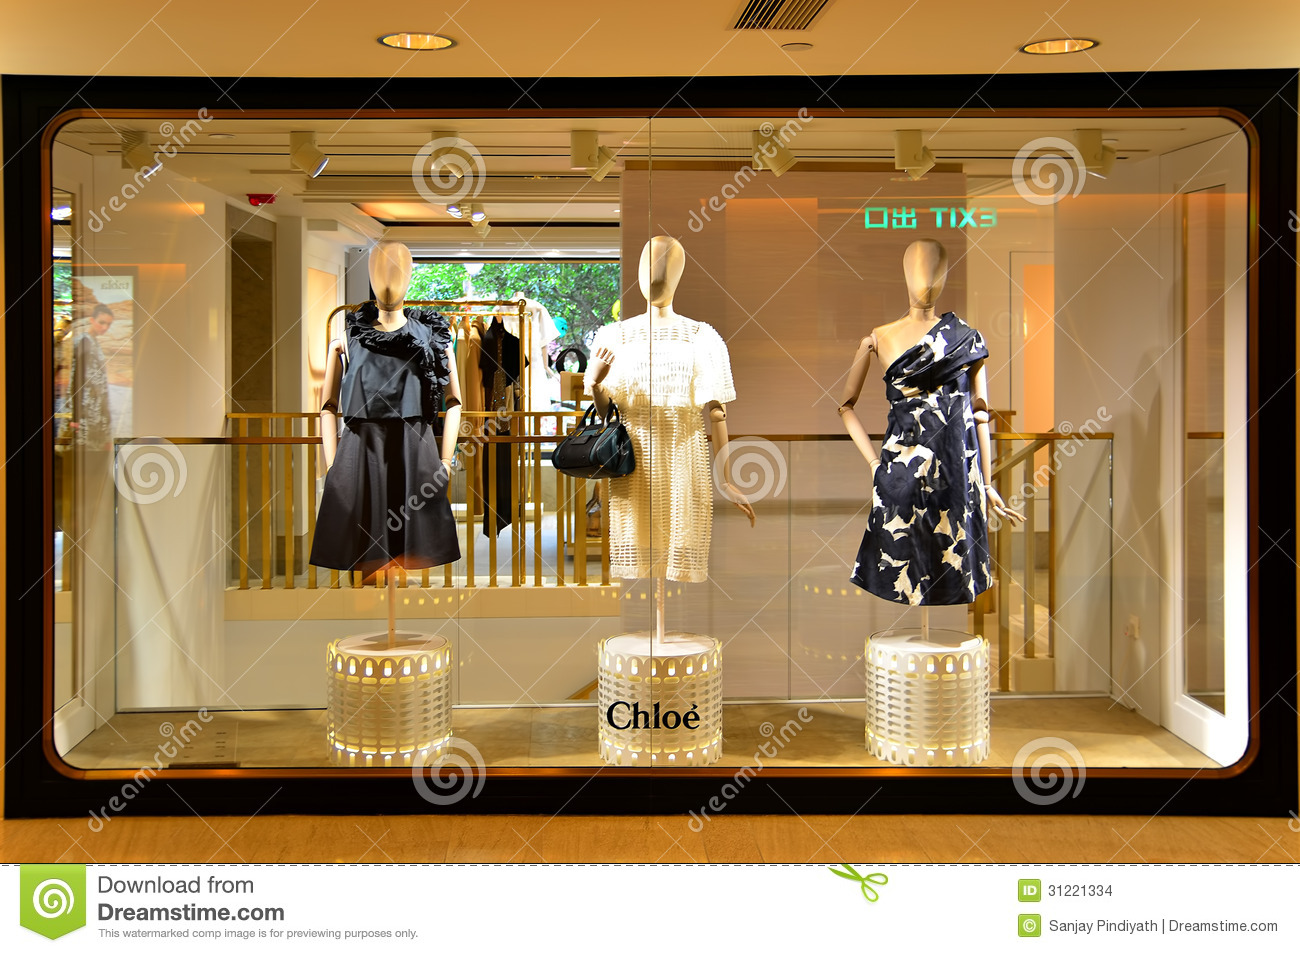 Chloe retail outlet editorial stock image. Image of purchase - 31221334 18fc03533